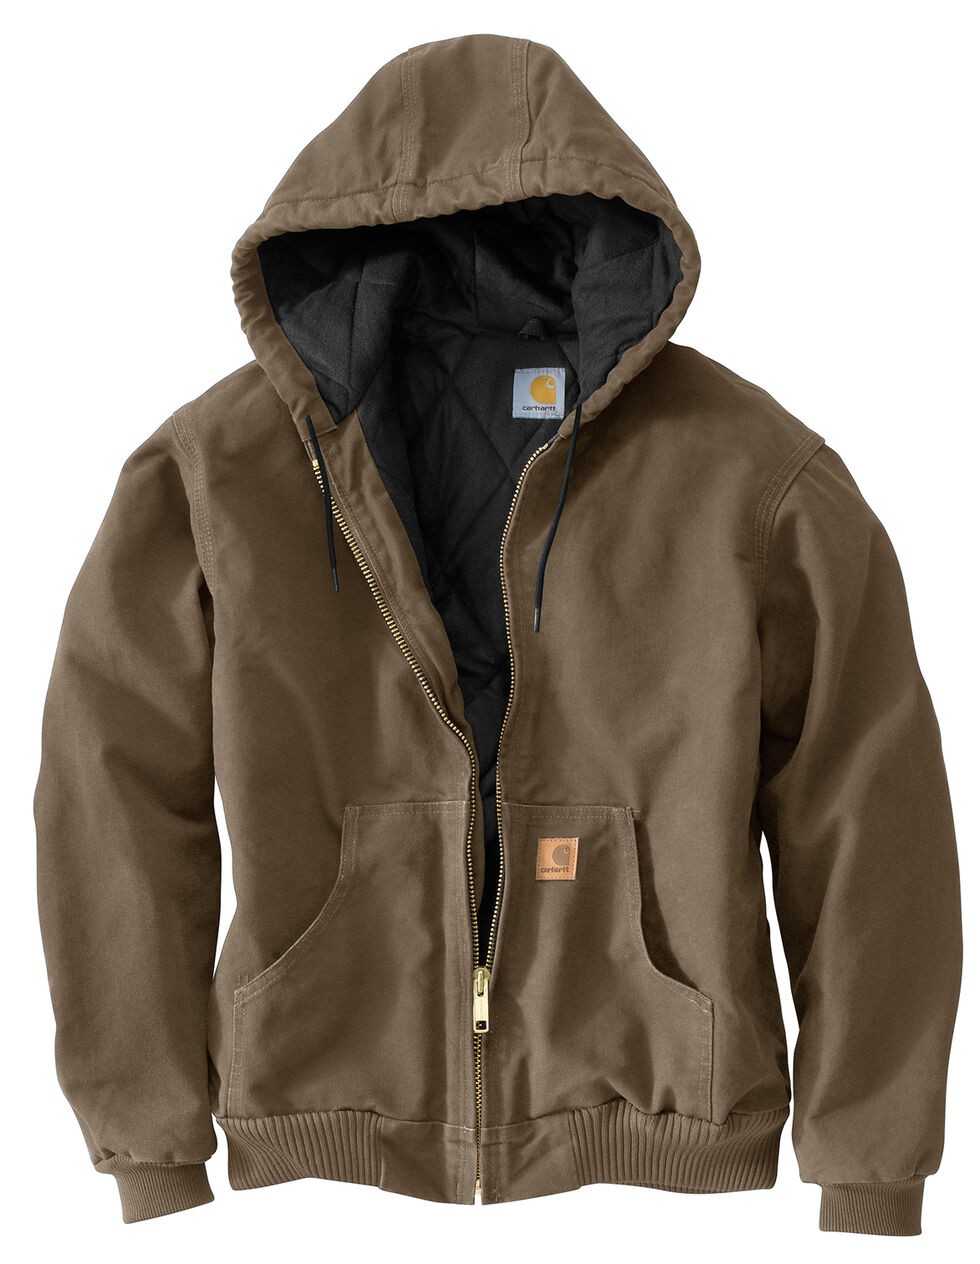 Carhartt Men's Sandstone Flannel Lined Active Jacket, Light Brown, hi-res